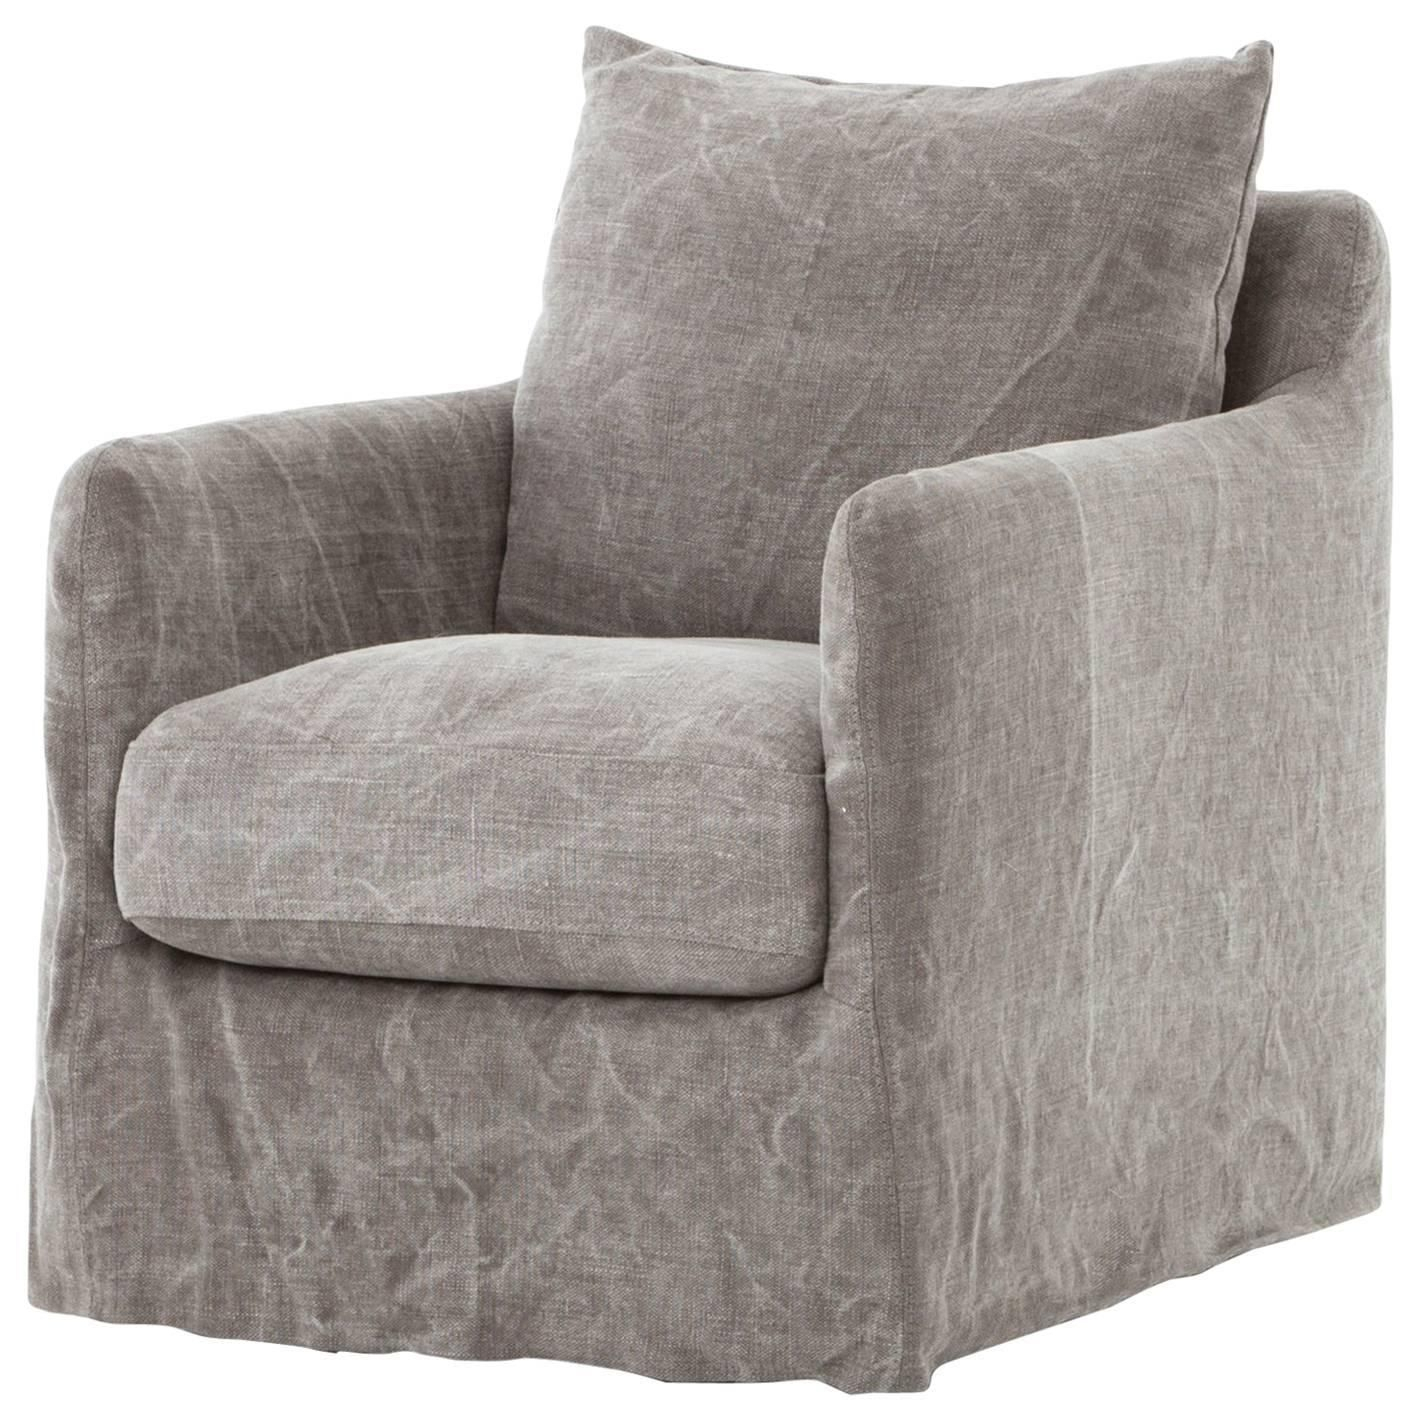 Modern Slipcovered Swivel Chair | Home Decor | Pinterest | Swivel Inside Nichol Swivel Accent Chairs (Image 14 of 25)